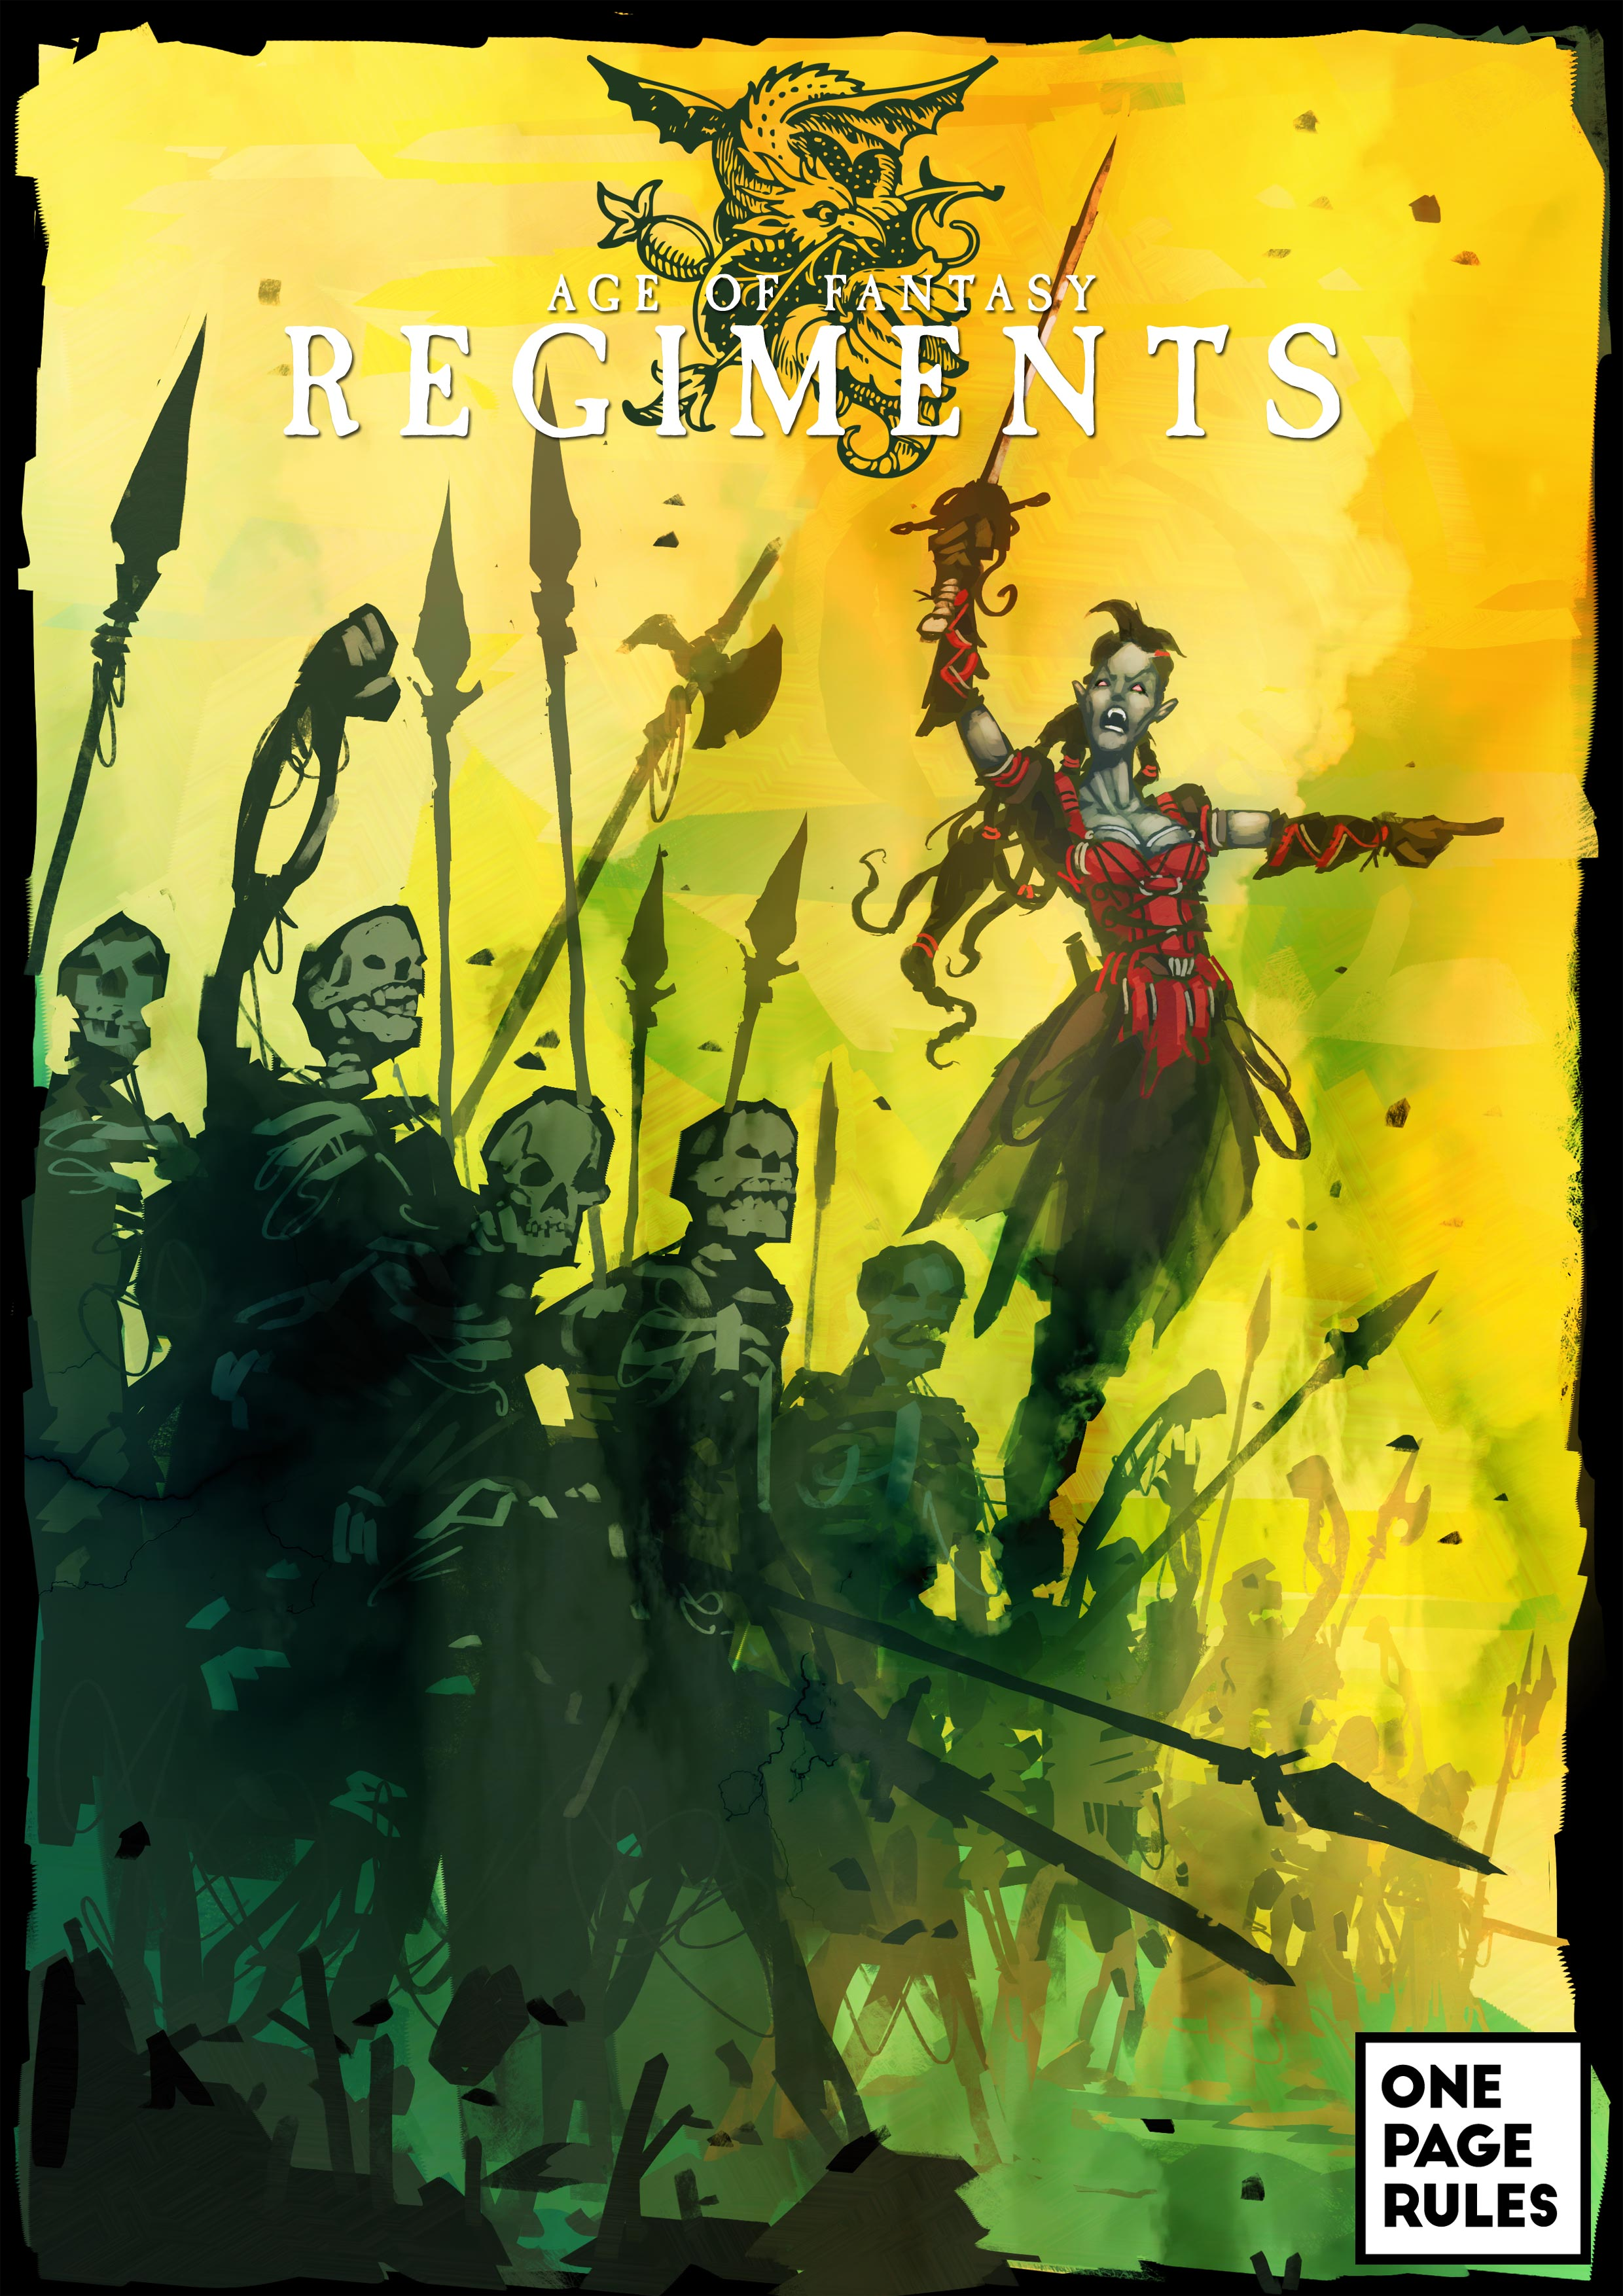 Age of Fantasy: Regiments